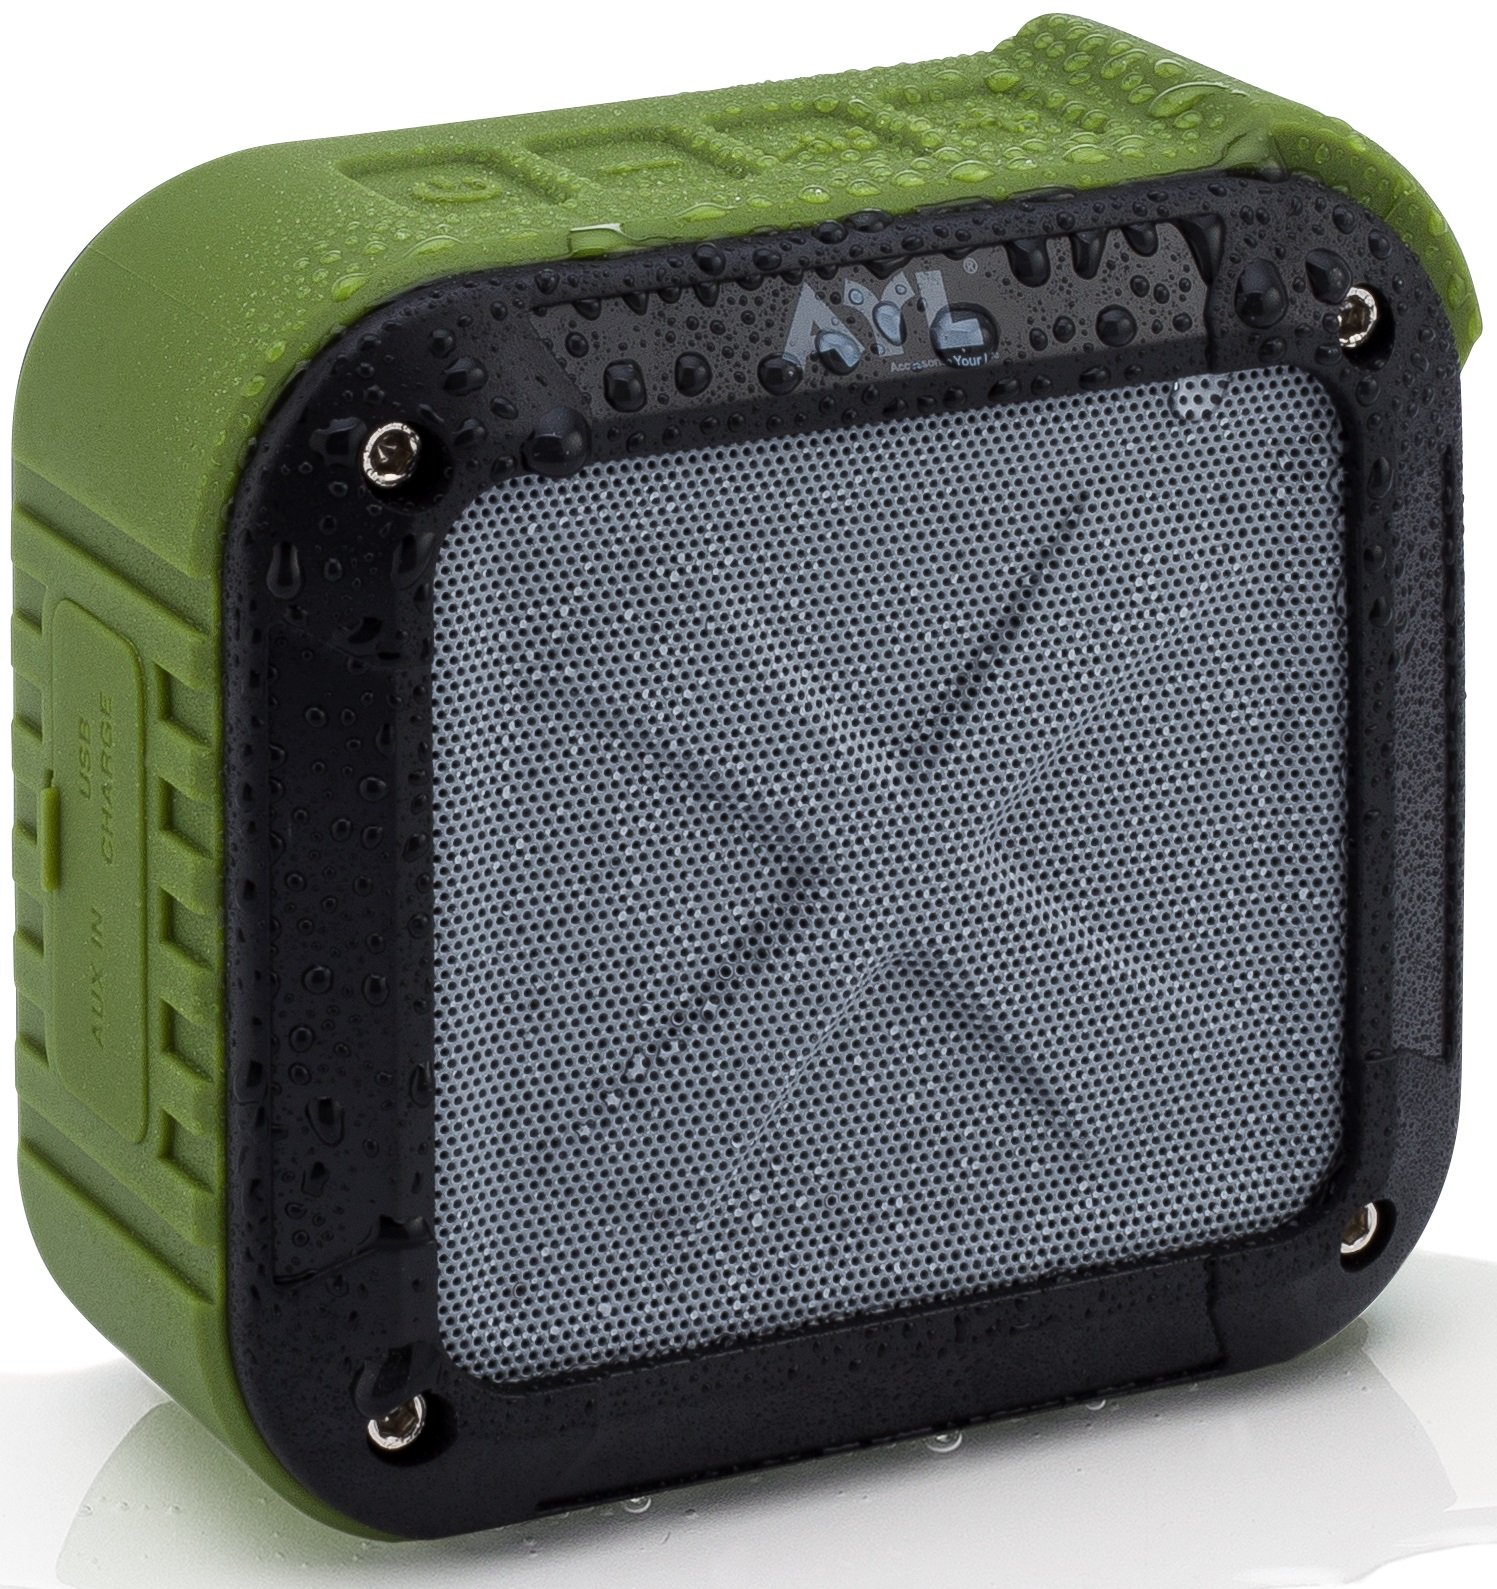 Best Portable Outdoor and Shower Bluetooth 4.0 Speaker by AYL SoundFit, Waterproof, Wireless with 10 Hour Rechargeable Battery Life